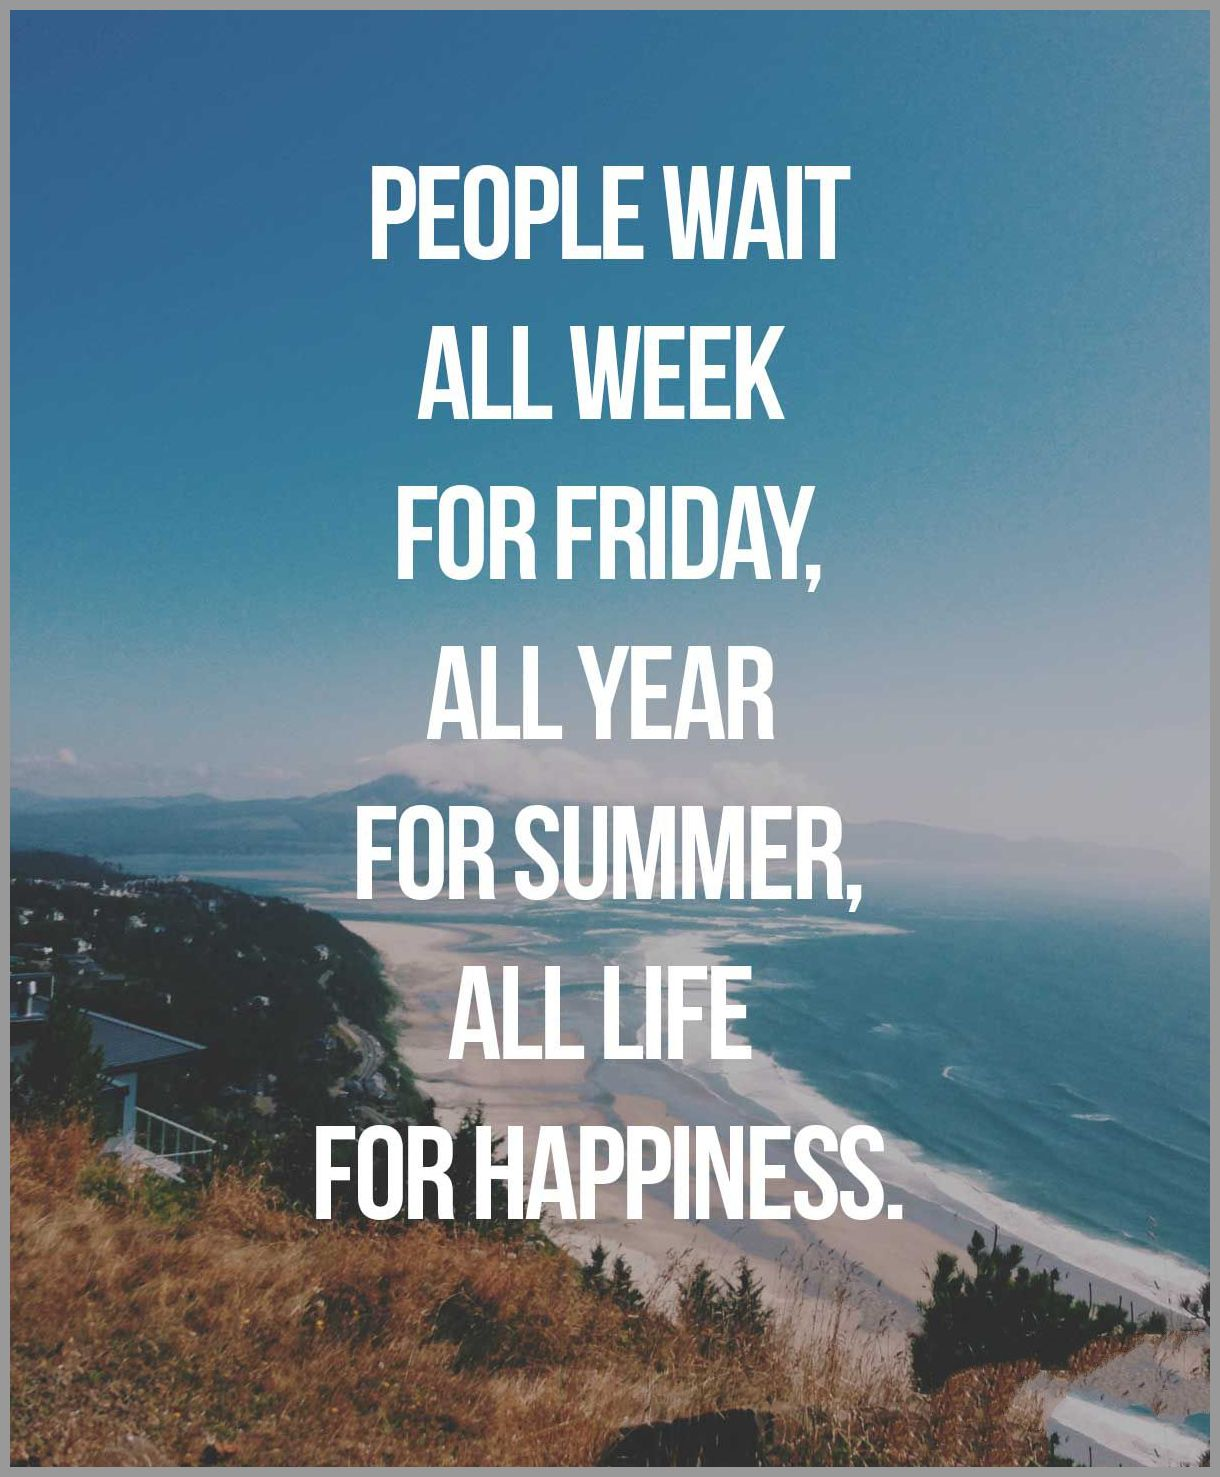 People wait all week for friday all year for summer all life for happiness - People wait all week for friday all year for summer all life for happiness